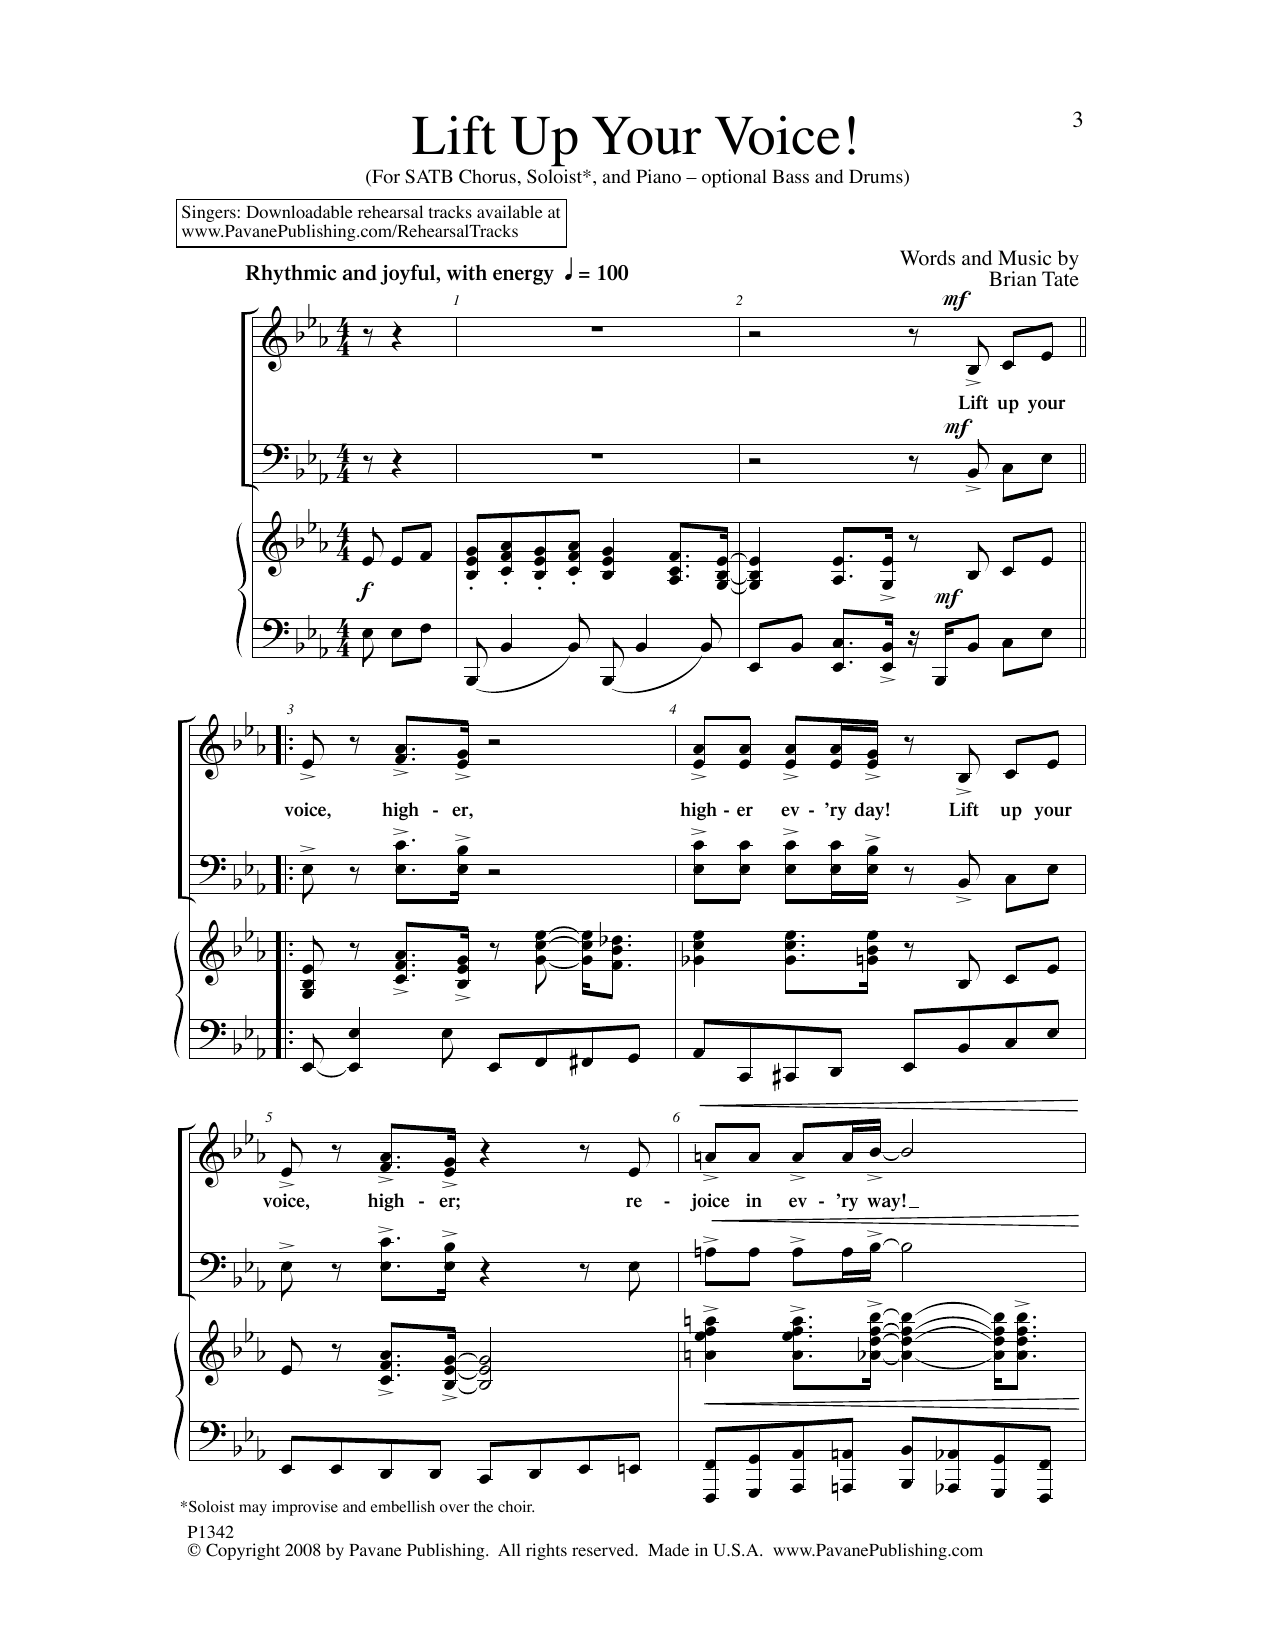 Brian Tate Lift Up Your Voice! sheet music notes and chords. Download Printable PDF.